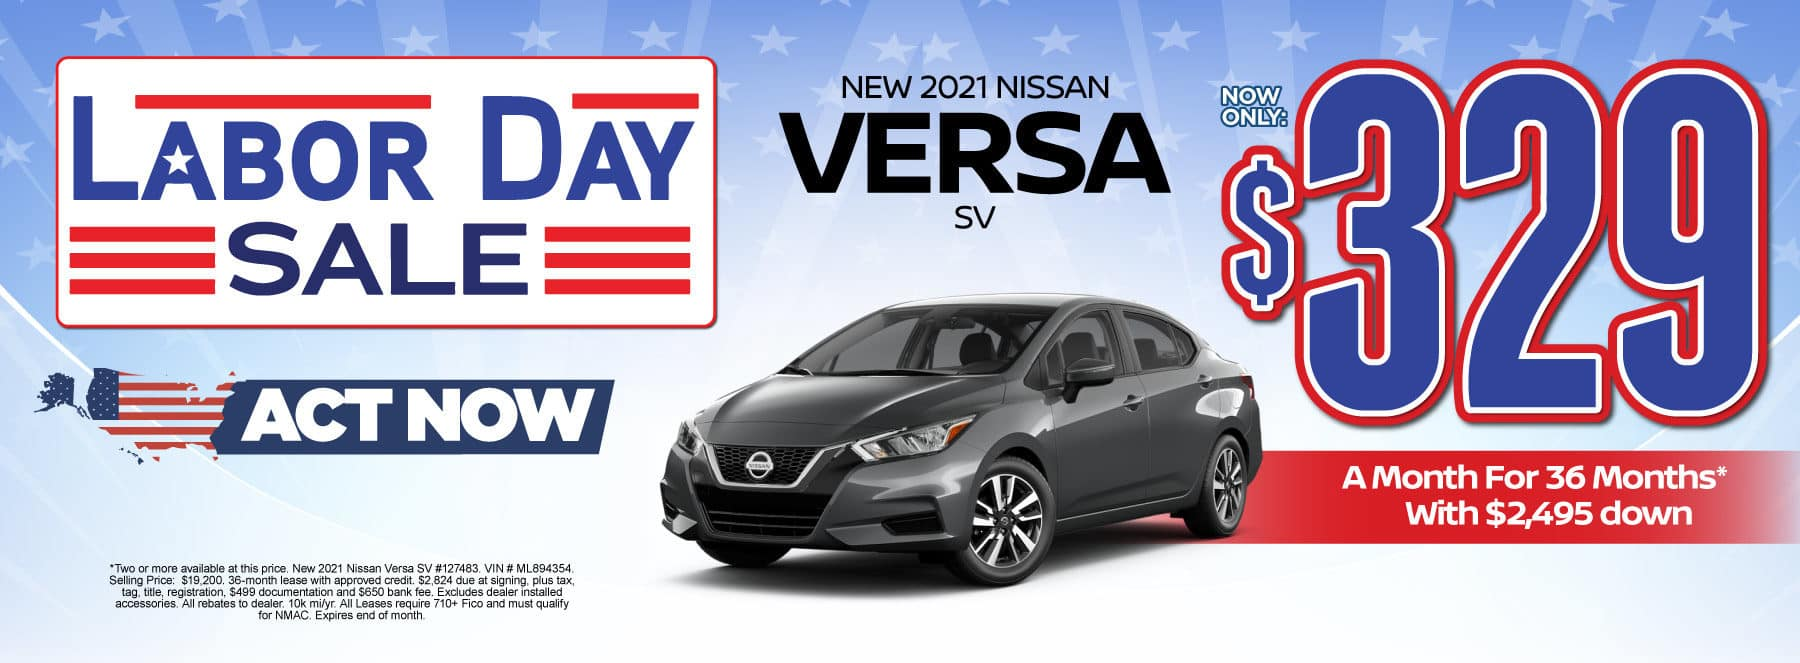 New 2021 Nissan Versa - Now only $329 a month - Act Now